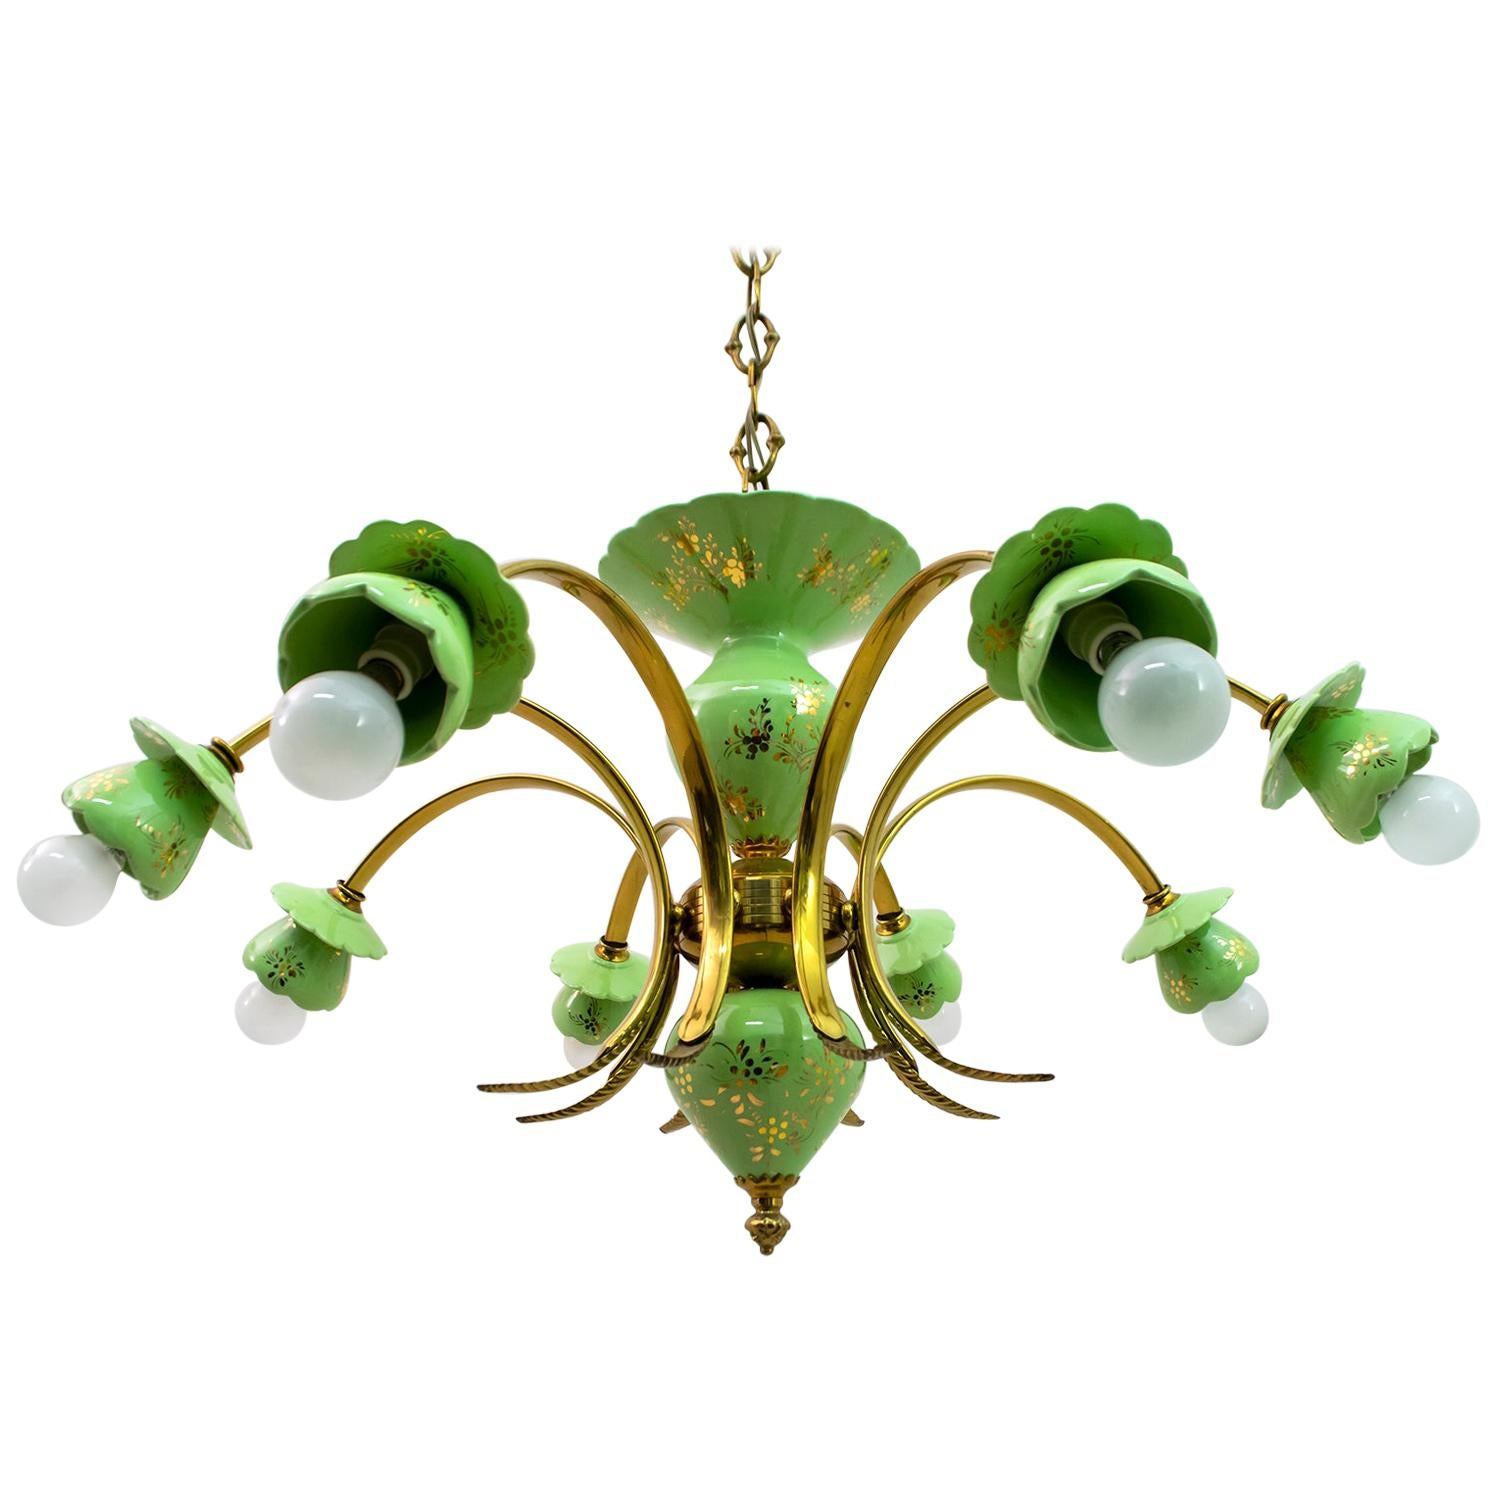 Neoclassical Style 8-Iight Italian Porcelain and Brass Chandelier, 1960s